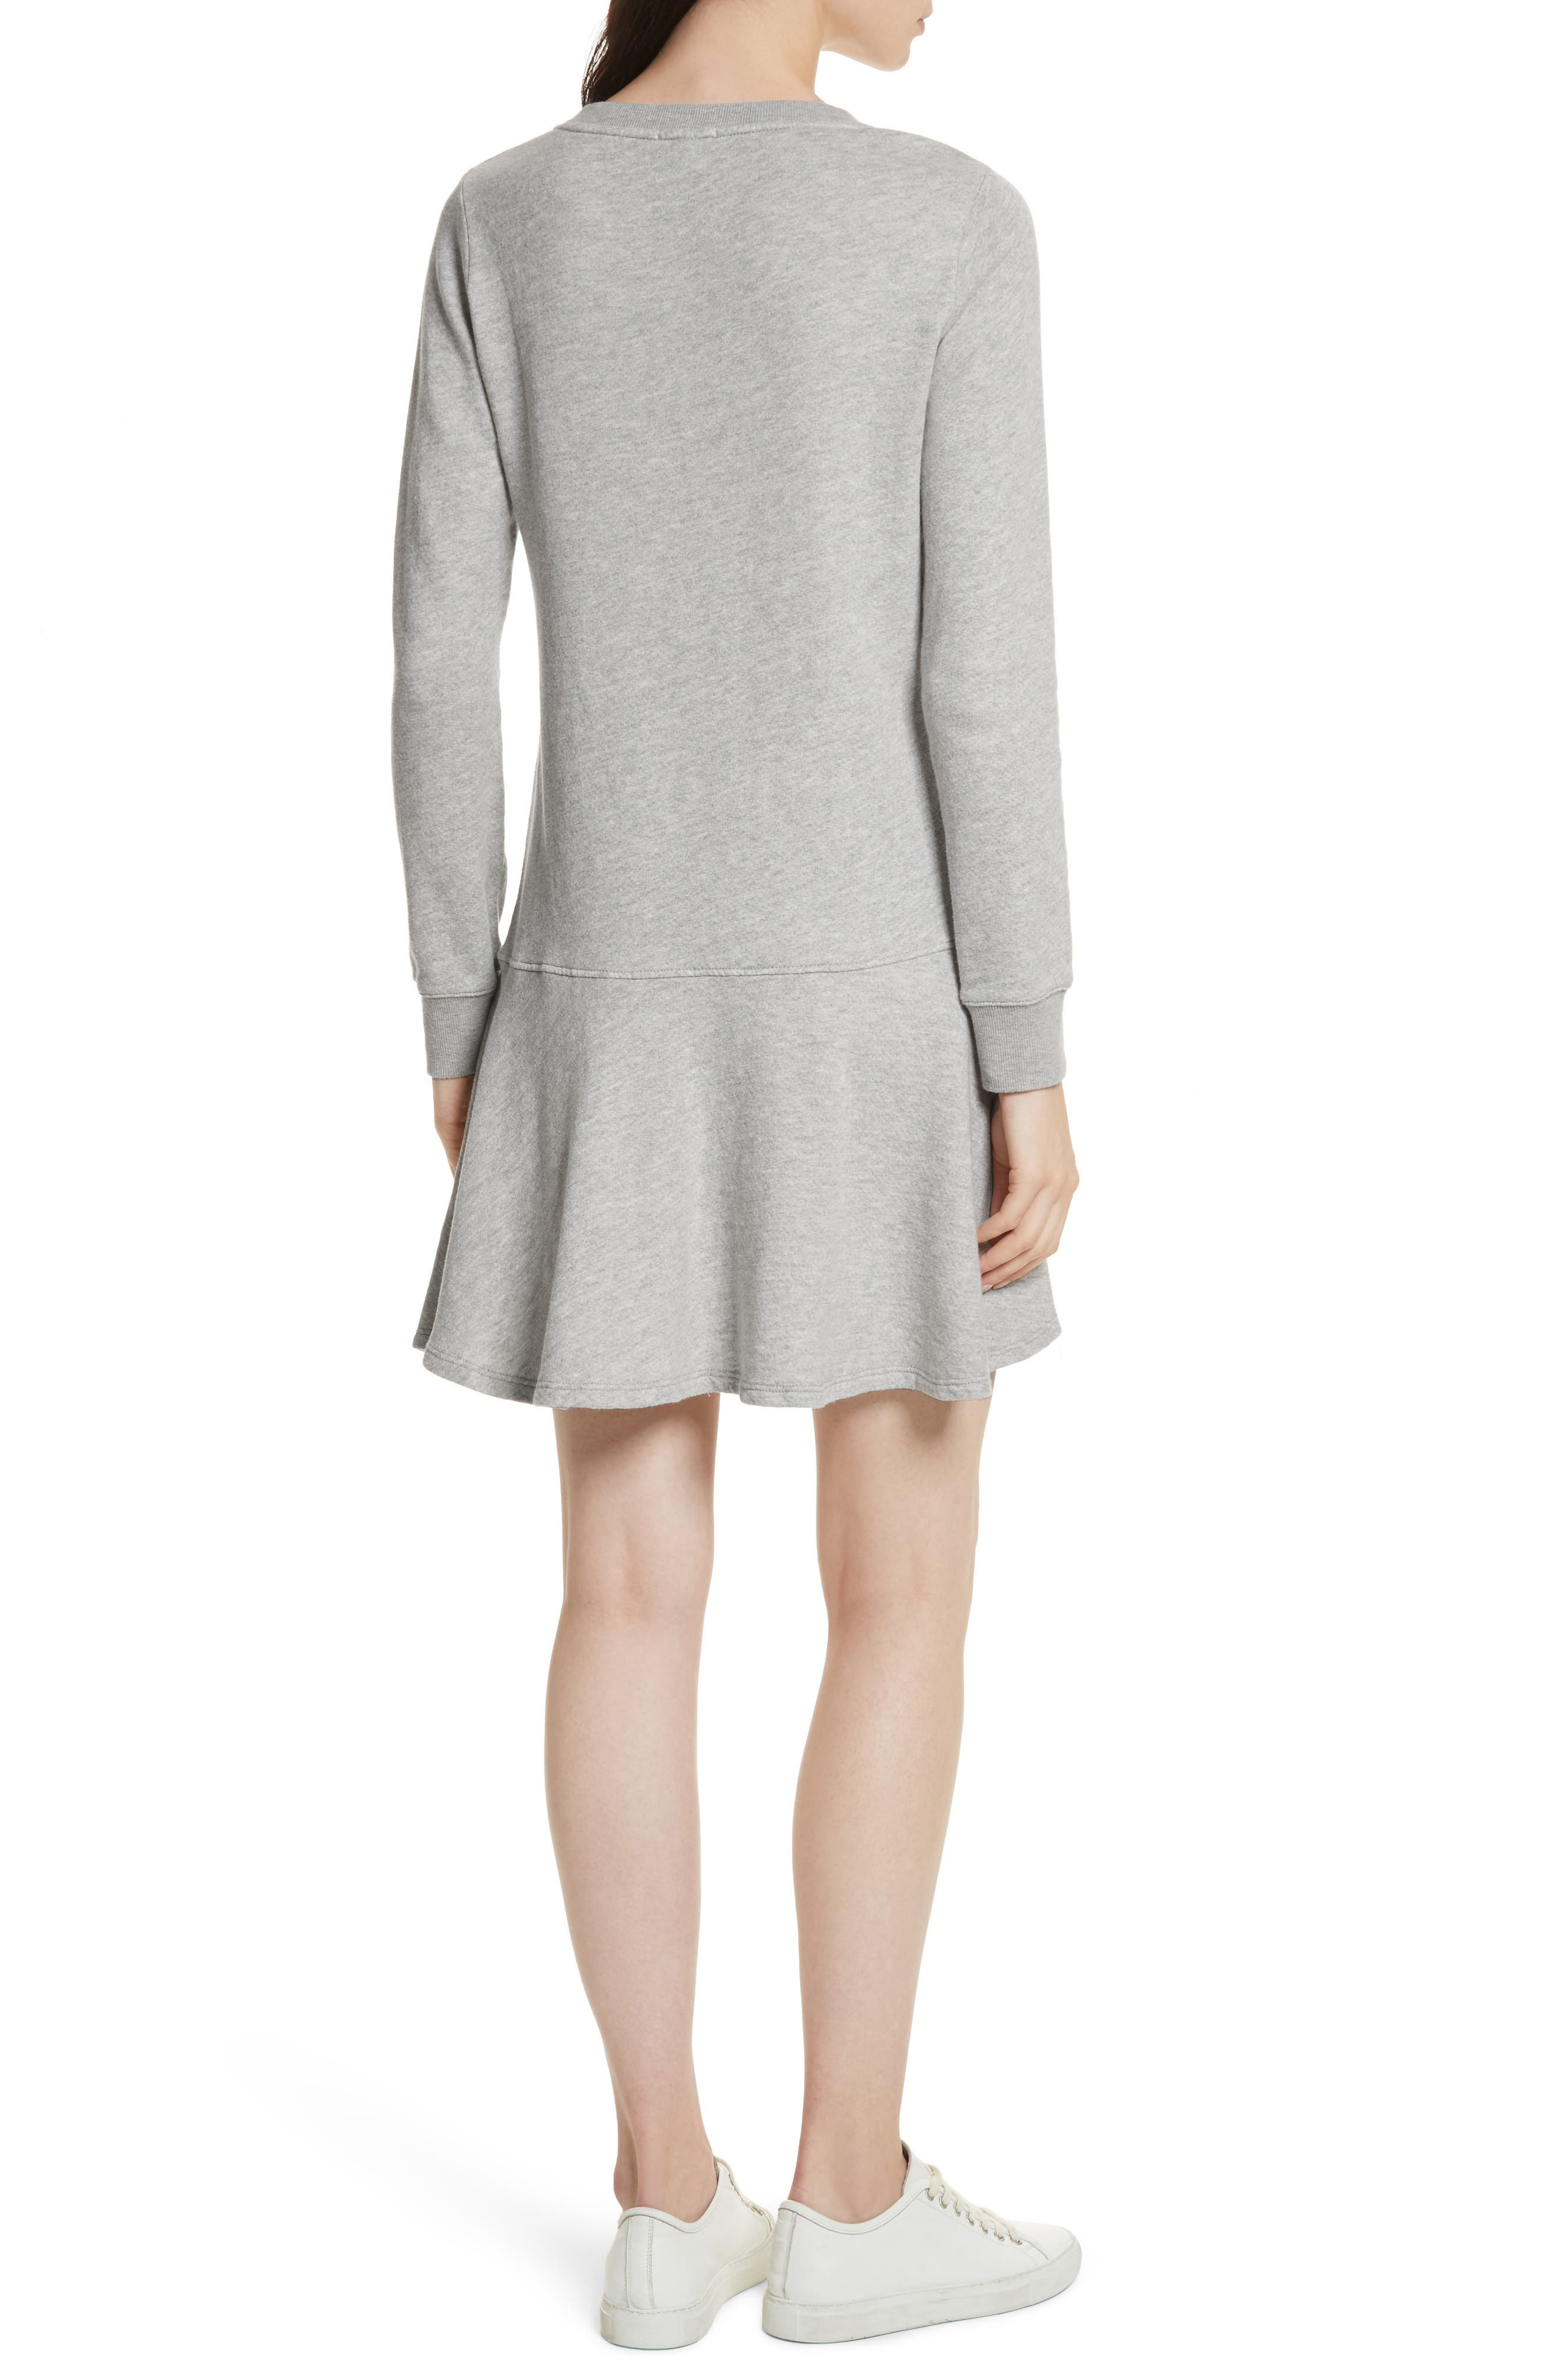 Runna French Terry A-Line Dress,                             Alternate thumbnail 2, color,                             033